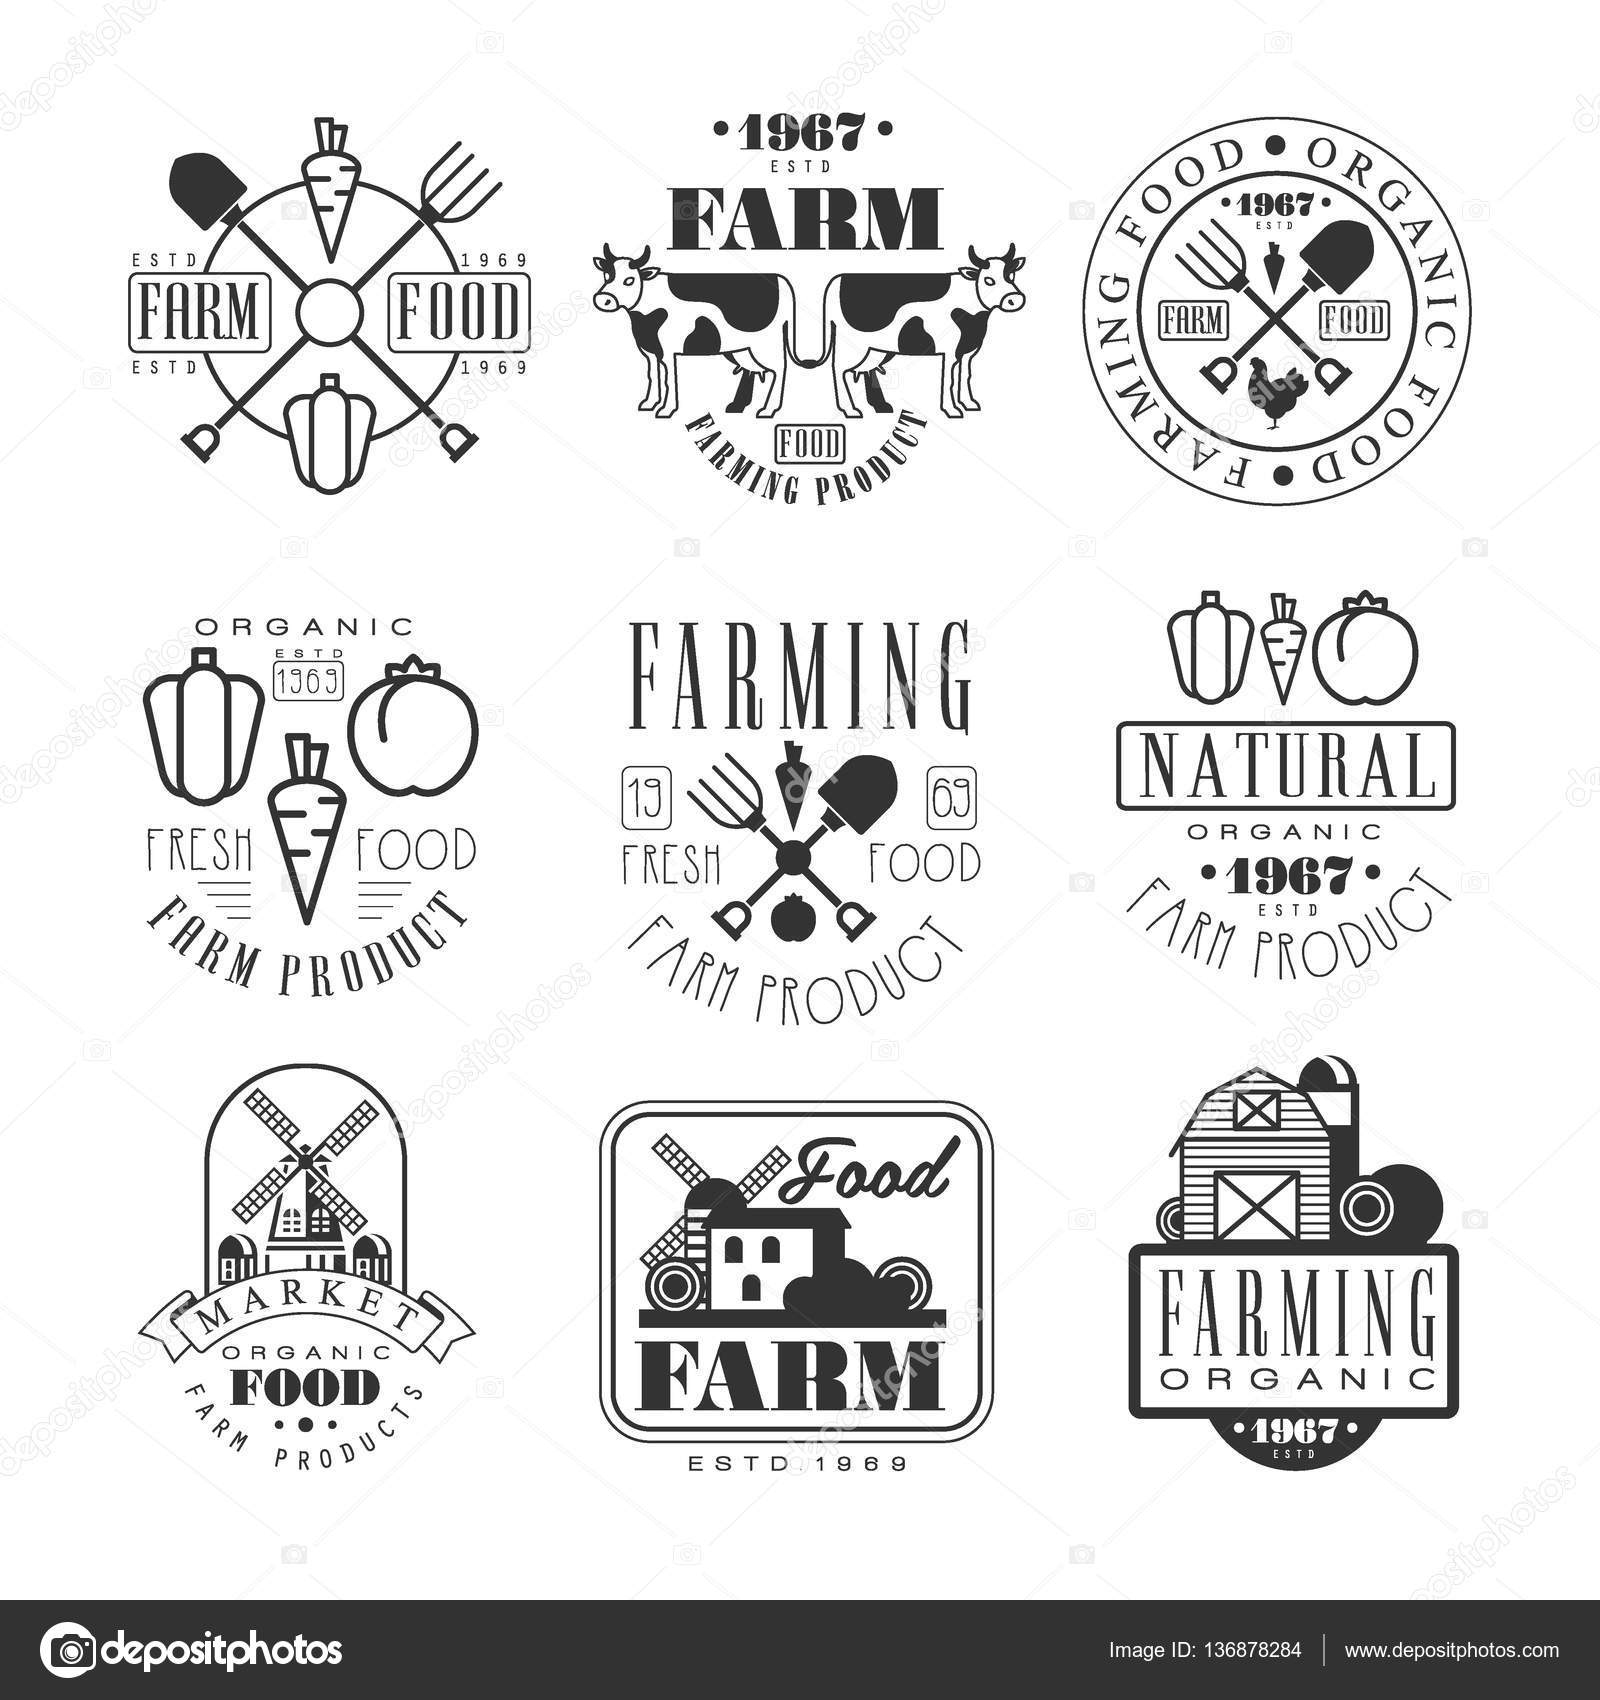 organic farm products black and white sign design templates with text and tools silhouettes stock